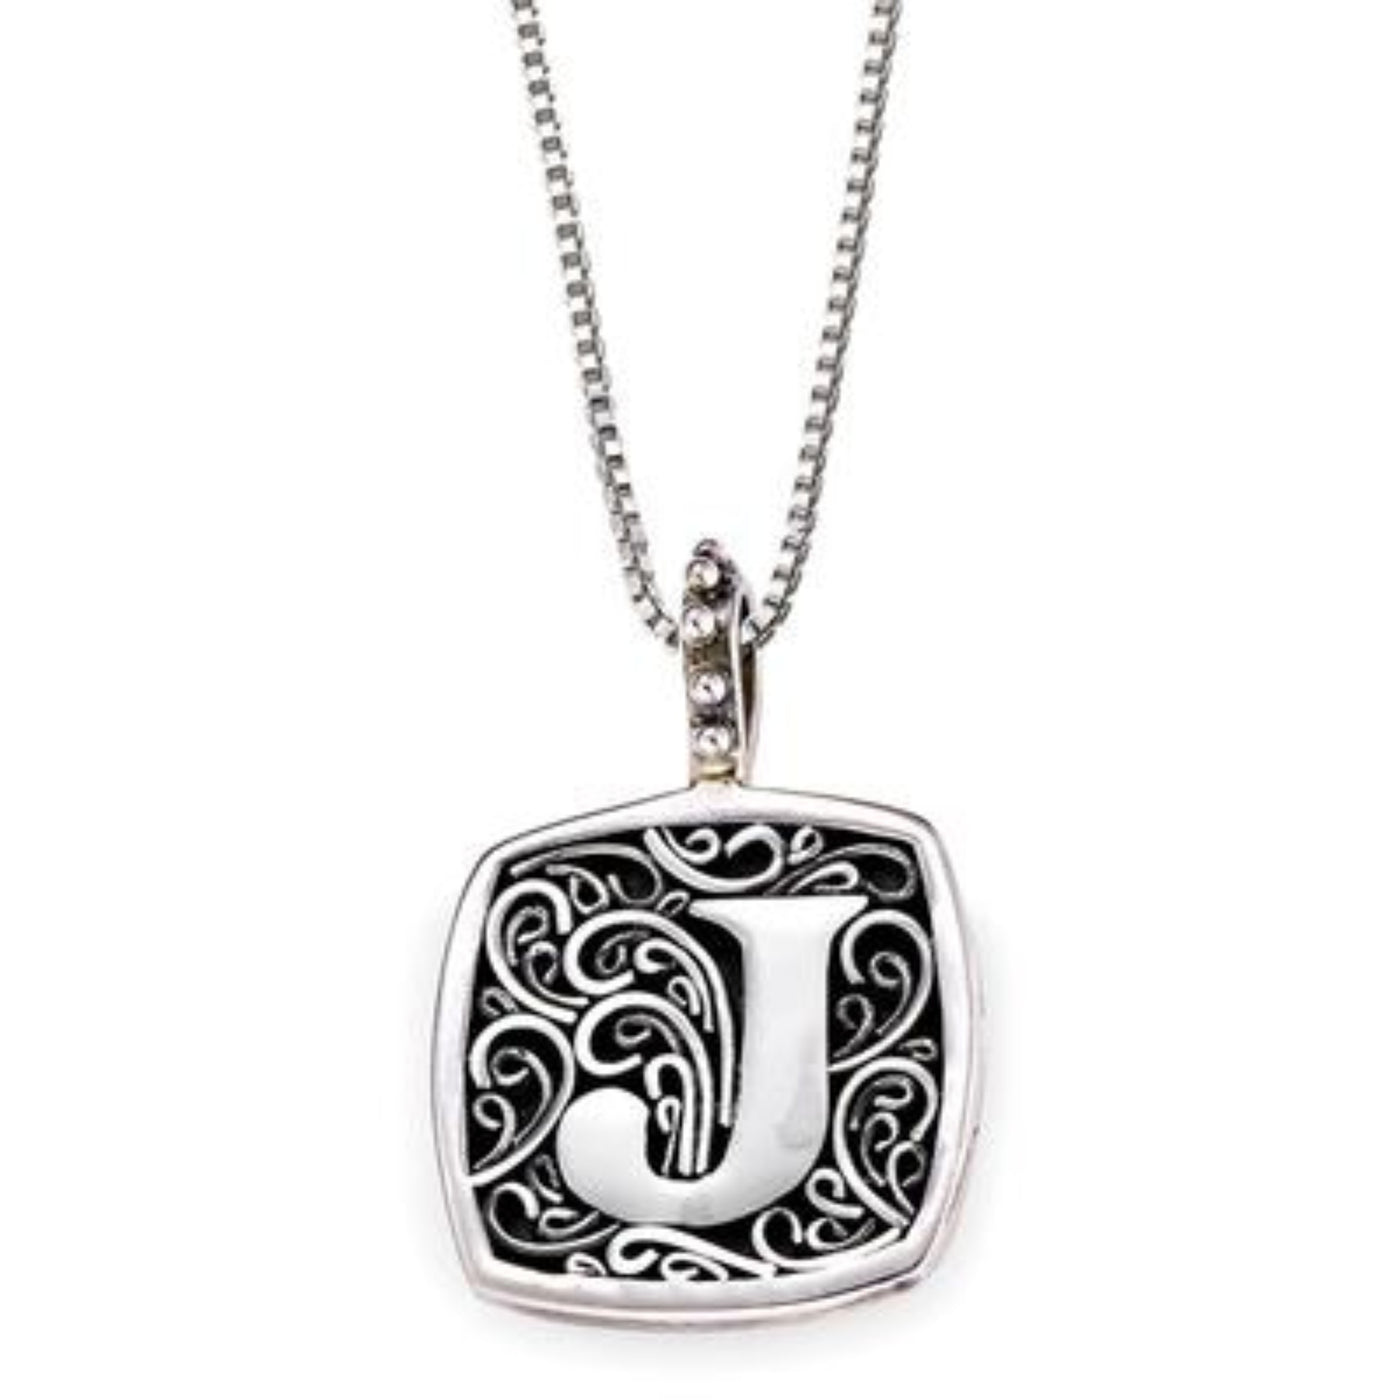 LB 59900XJ J INITIAL NECKLACE